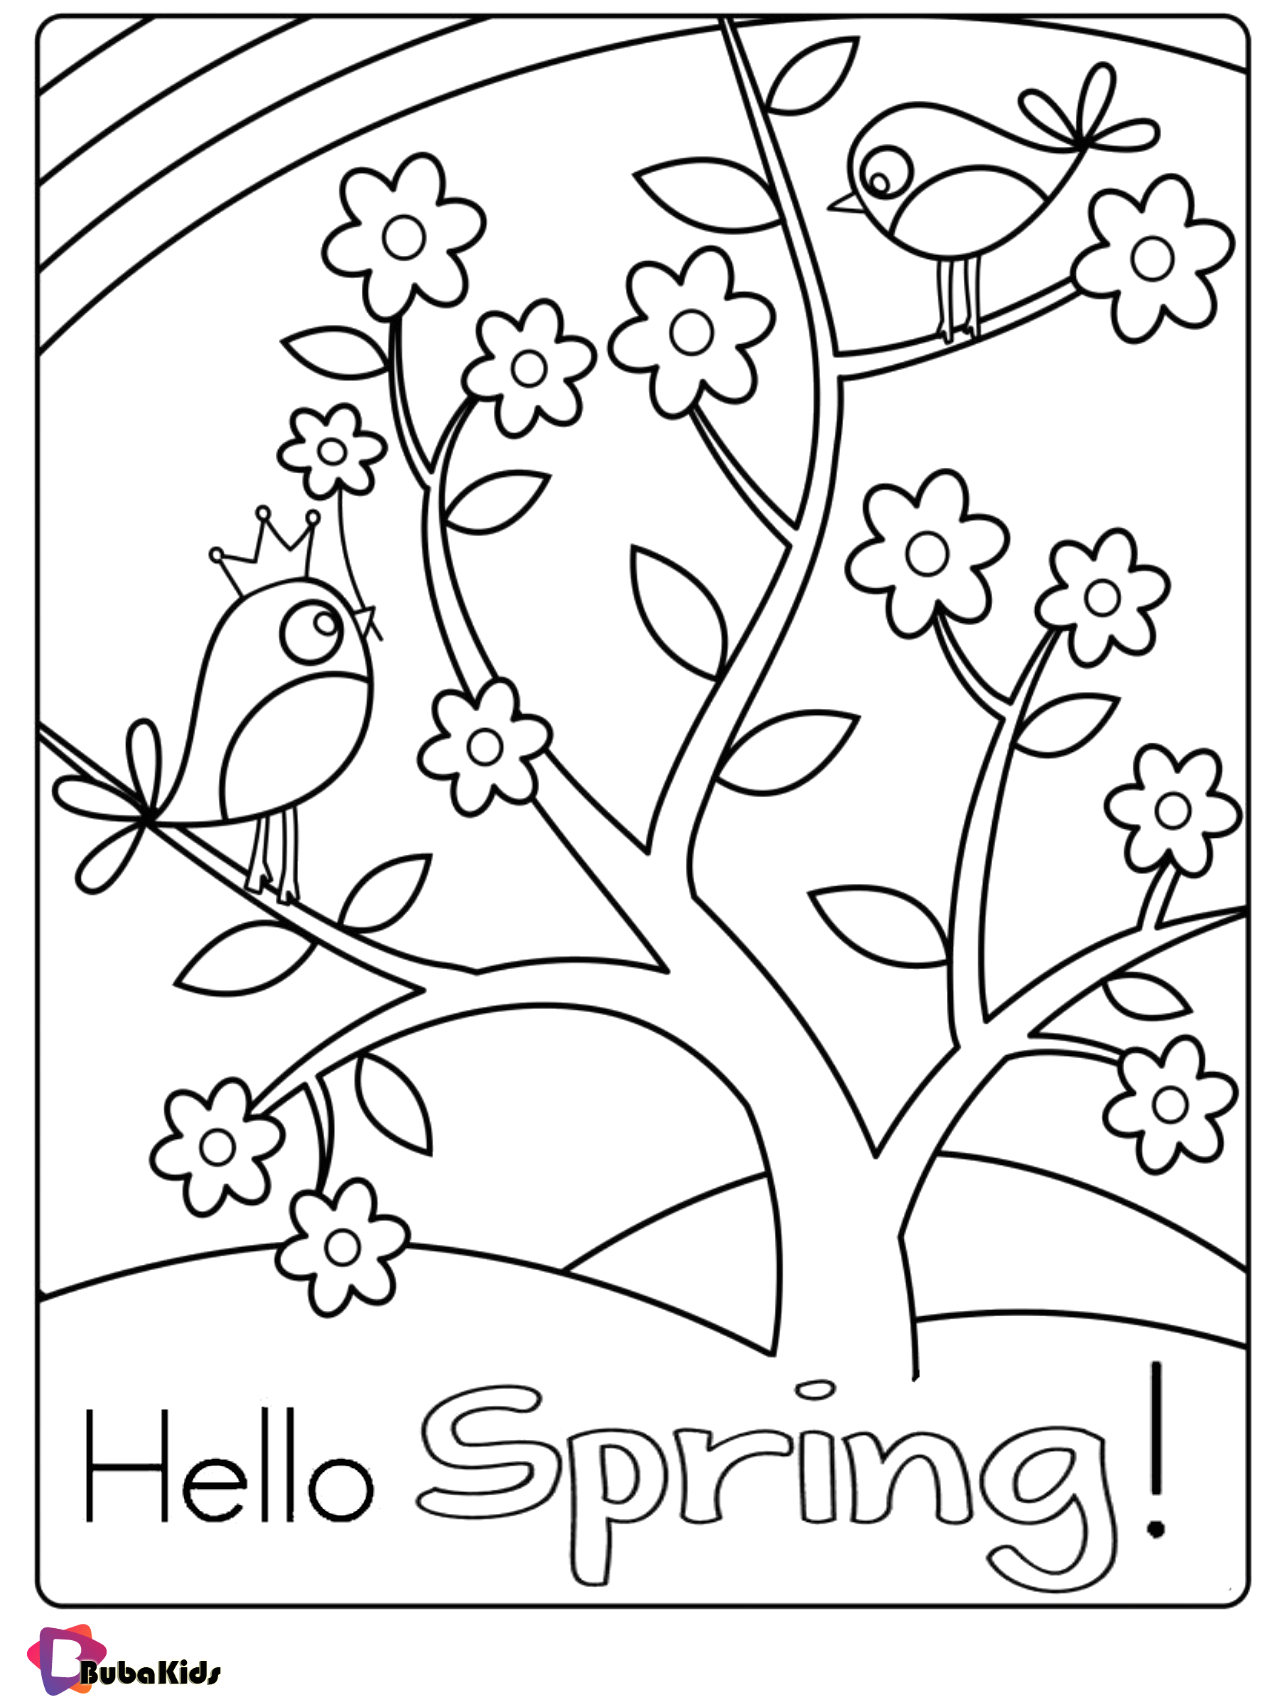 Free Printable Spring Coloring Pages for toddlers Free Hello Spring Coloring Page for Kids